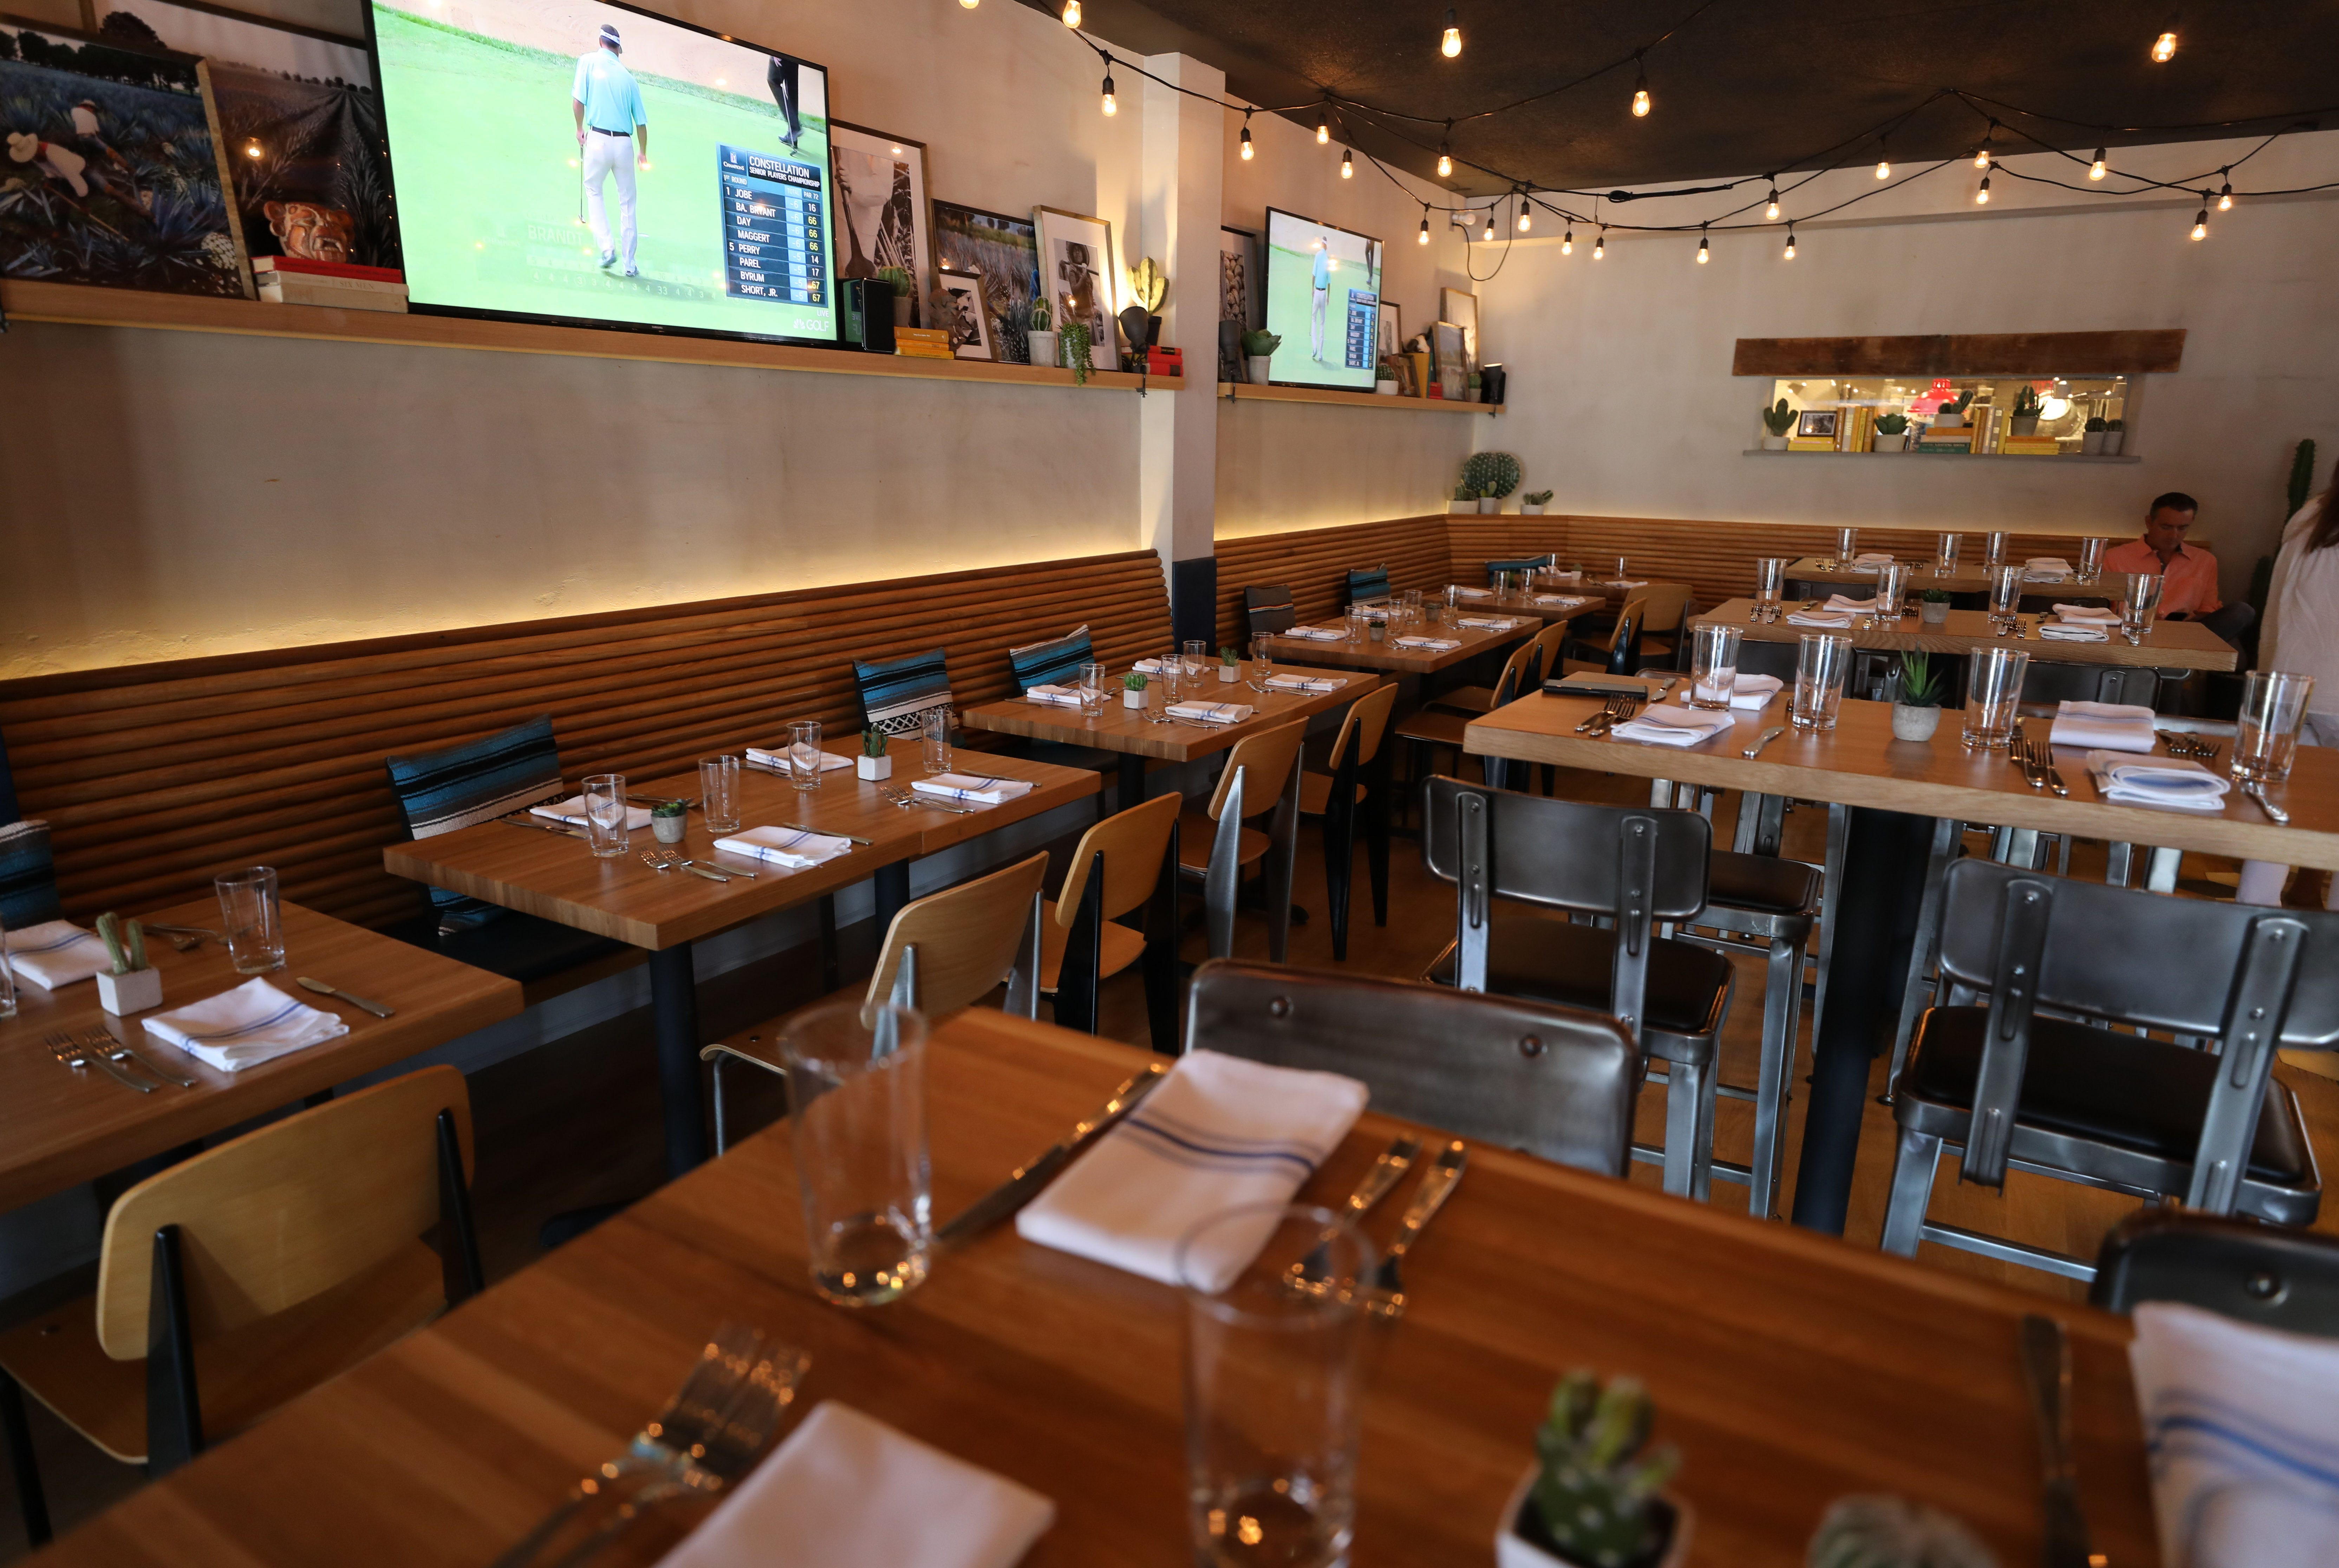 http://www.lohud.com/picture-gallery/life/food/restaurants/2018/07/13 ...